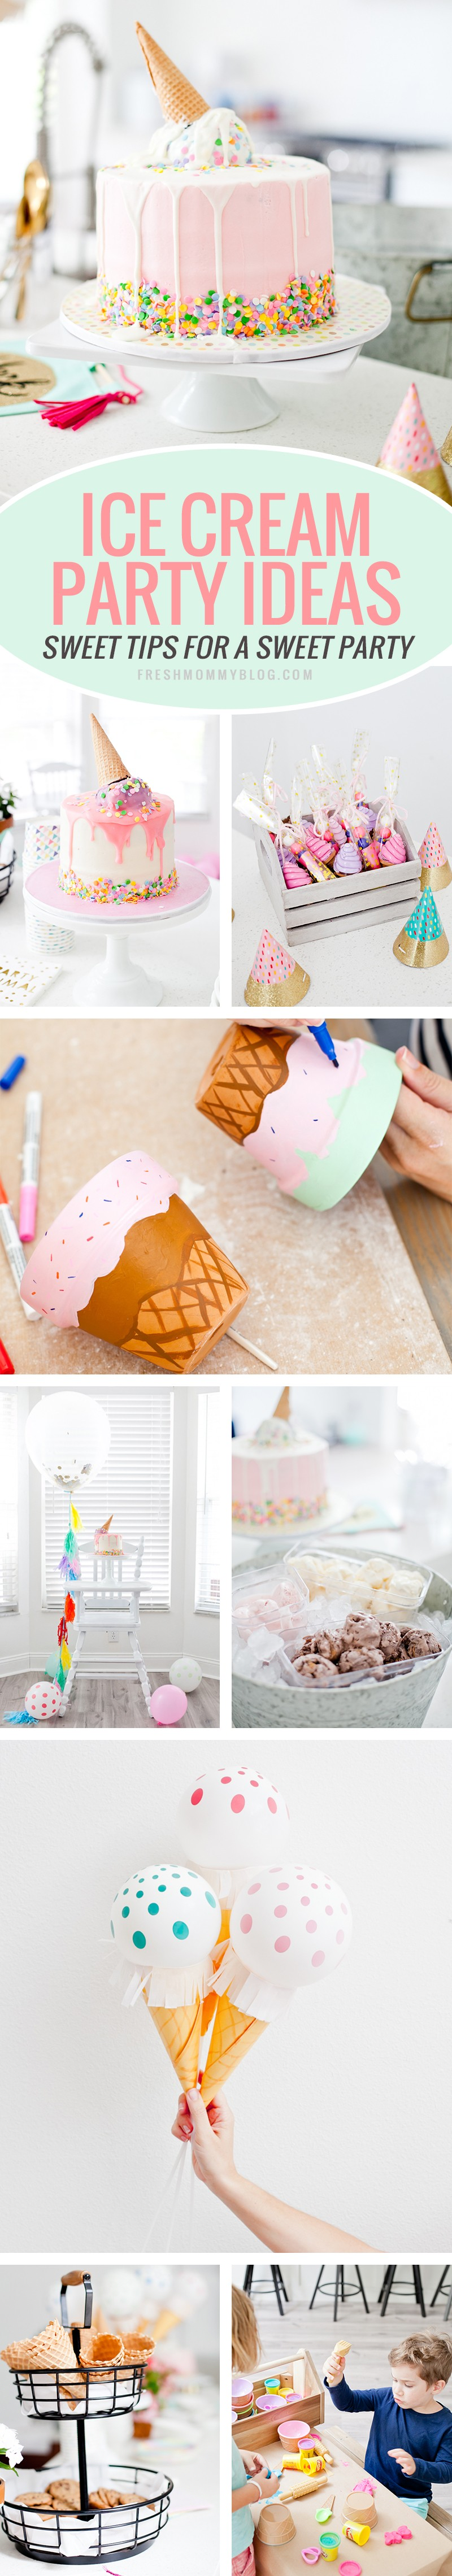 """Ice Cream Party Ideas for an Ice Cream Social Birthday Party with DIY Ice Cream Balloons, and ice cream cone """"spilled"""" cake, Ice Cream bar with cookies for DIY ice cream cookies and more! Decorations, kids party, girls party tips from lifestyle blogger Tabitha Blue of Fresh Mommy Blog! #party #icecream #partydecor #partyideas"""